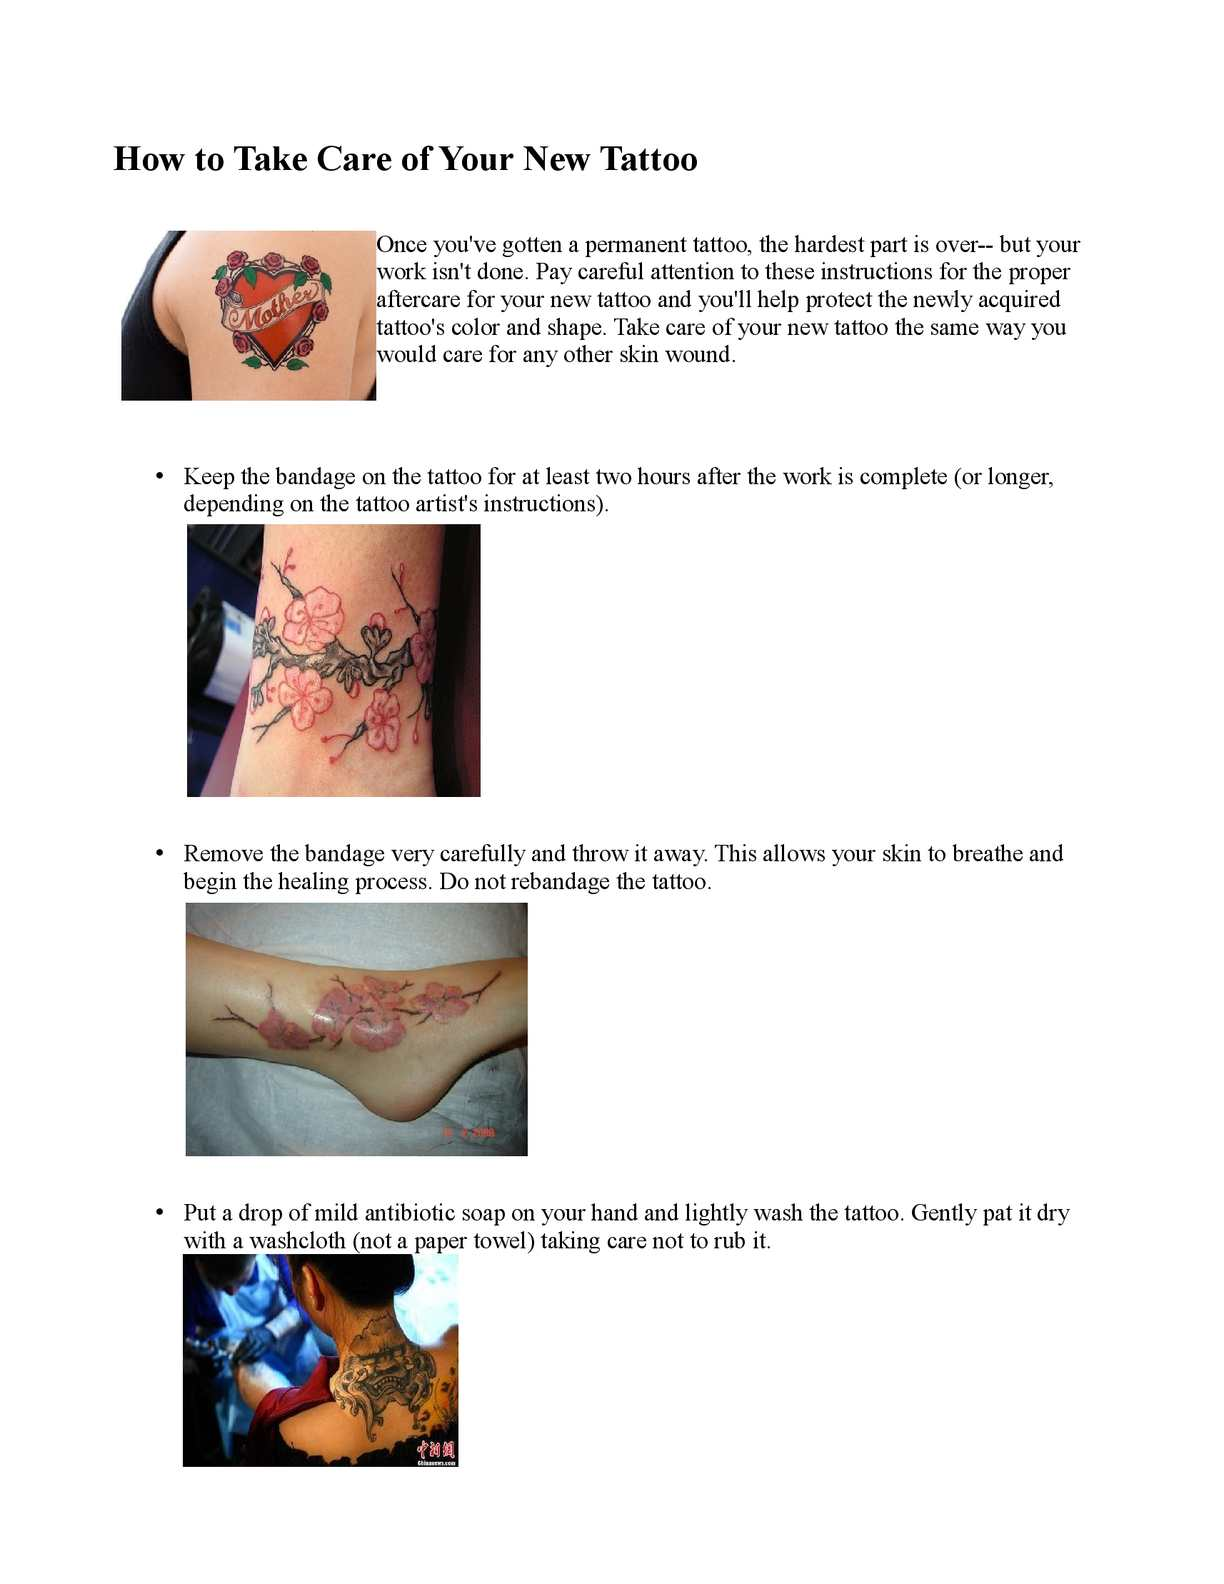 Calam o how to take care of your new tattoo tattoo for Tattoo bandage removal